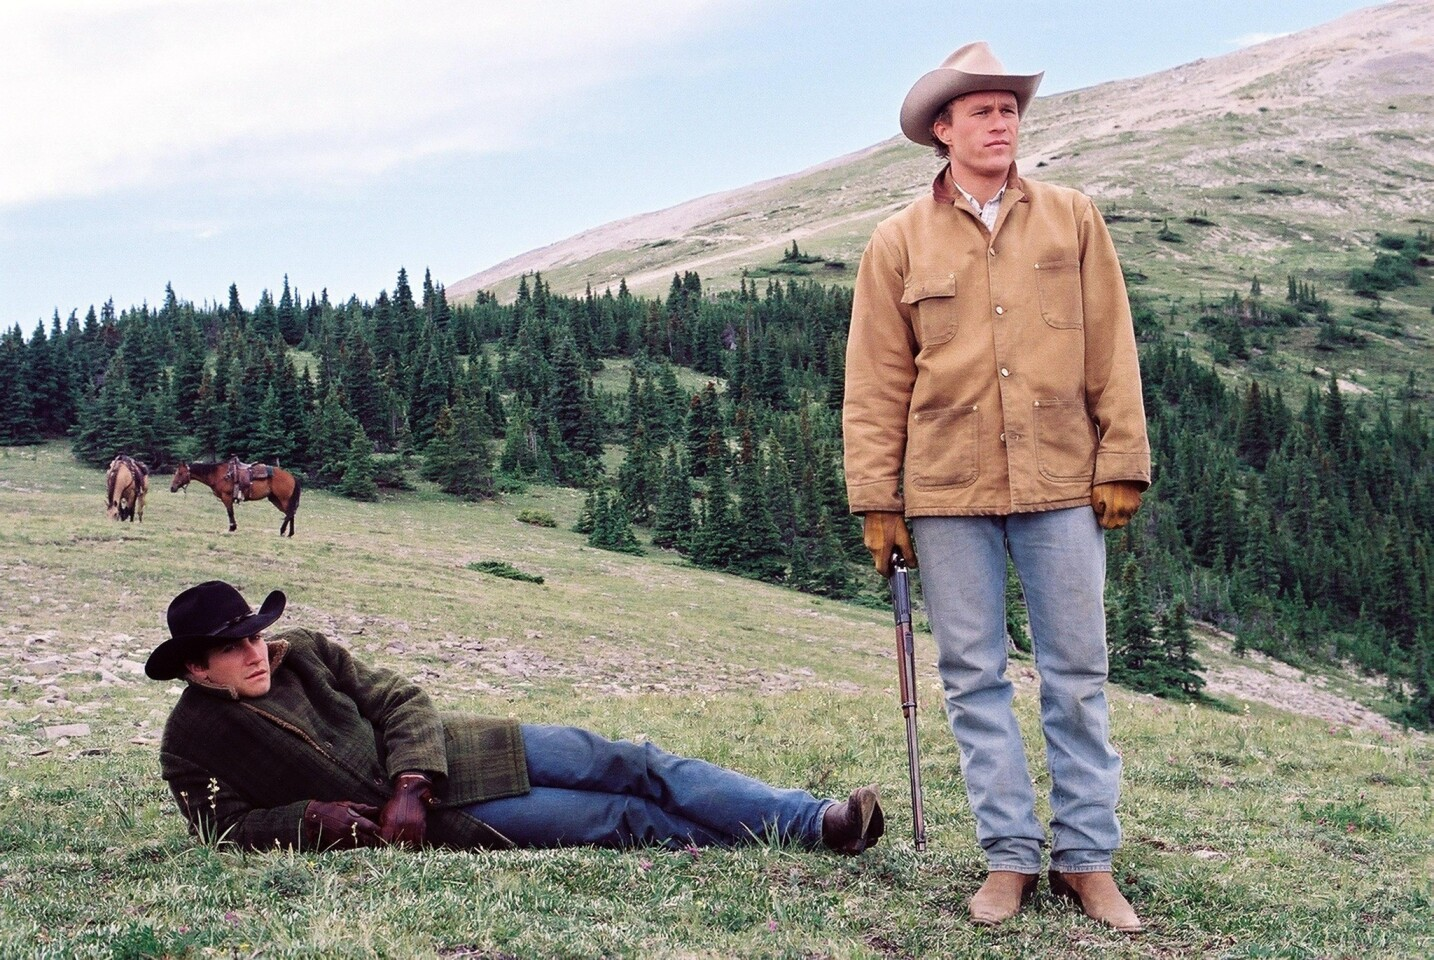 """When it opened in 2005, Focus Features' """"Brokeback Mountain"""" generated buzz for pushing boundaries of the western genre, though it ultimately lost the best picture Oscar to """"Crash."""" Domestic gross: $83,025,853."""